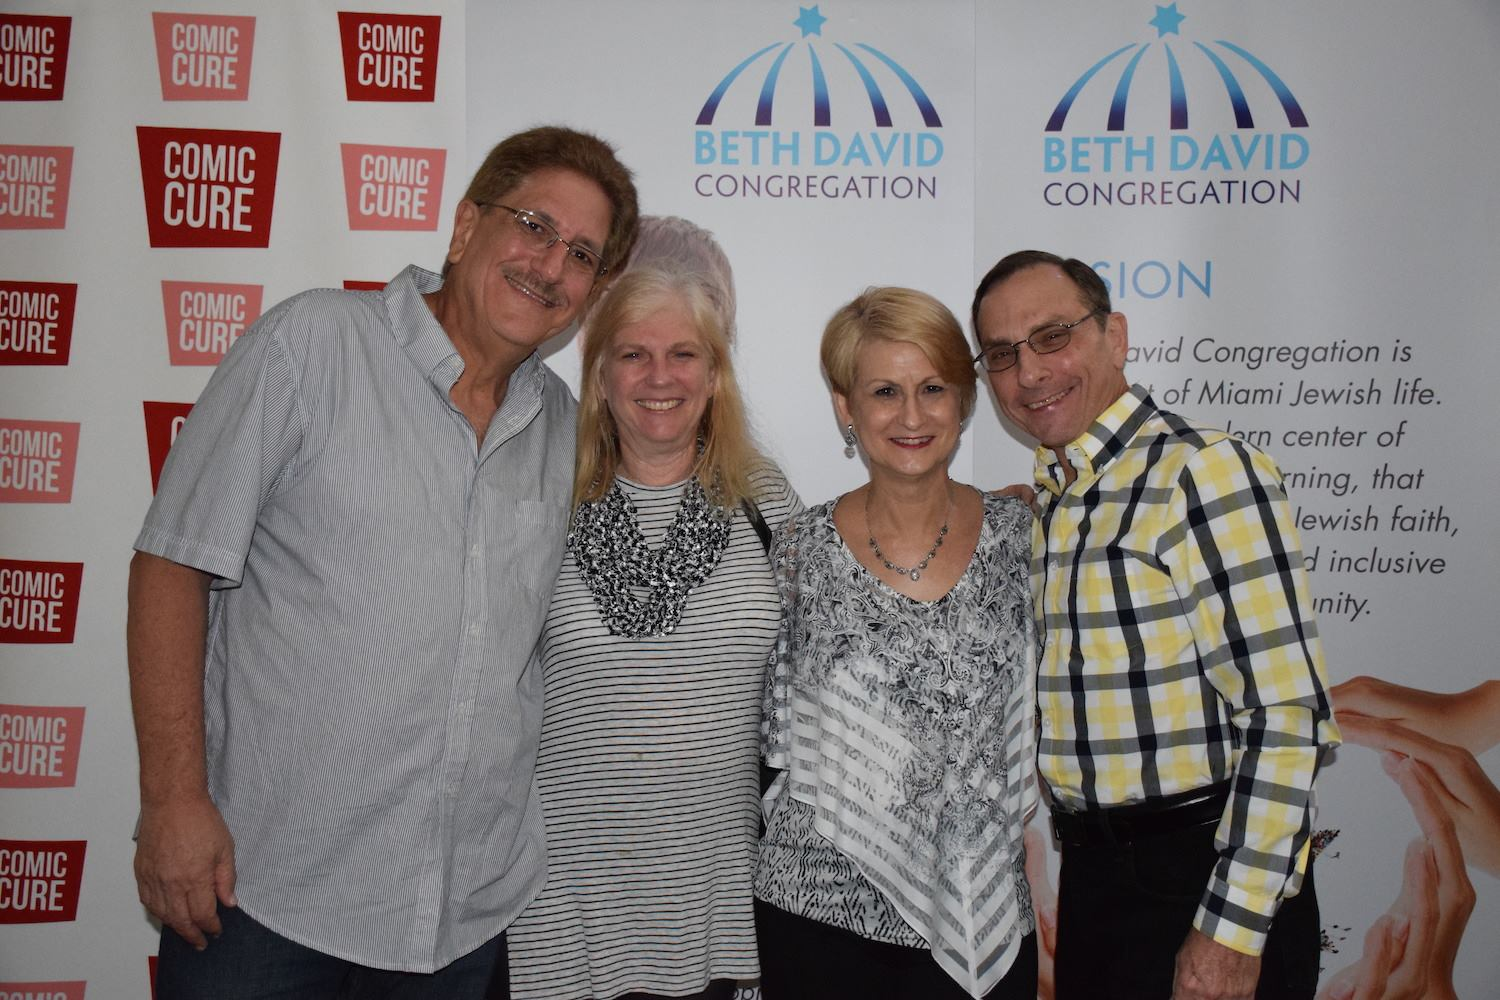 Jewish Comedy Tour – Beth David Congregation